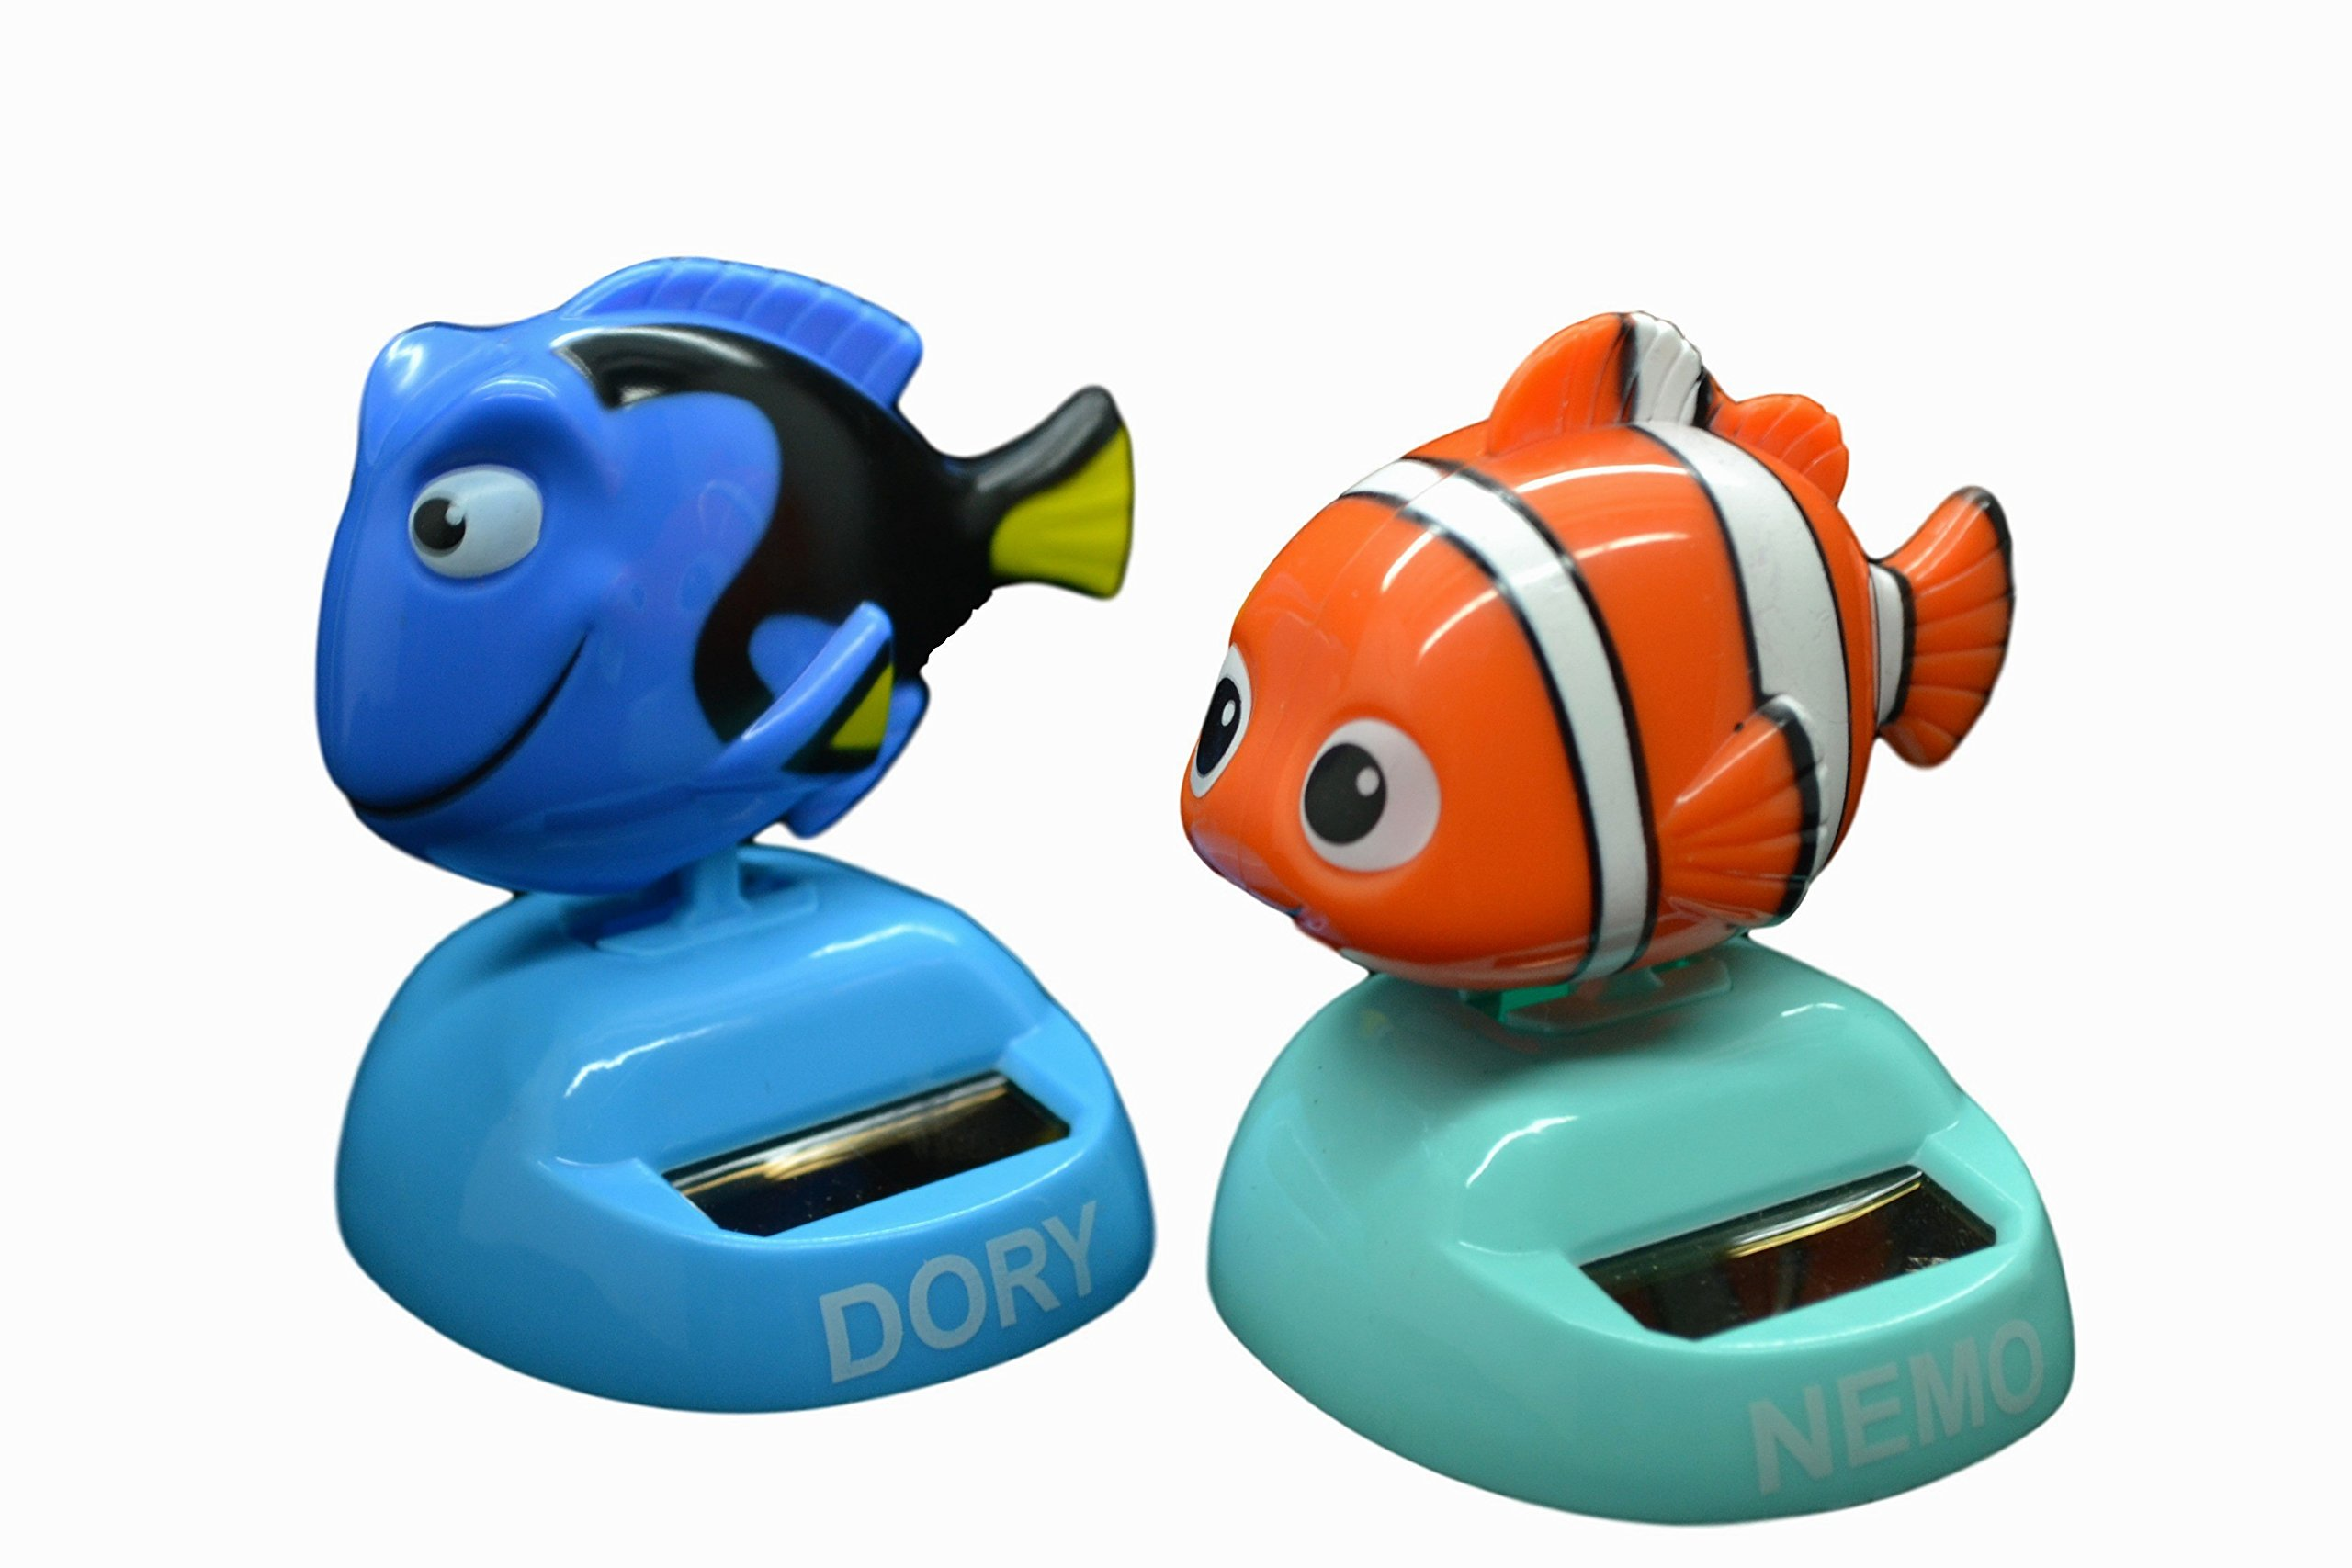 Disney Pixar Finding Dory Two Solar Powered Mini Toys. Nemo & Dory 2.7'' H. Limited Edition.